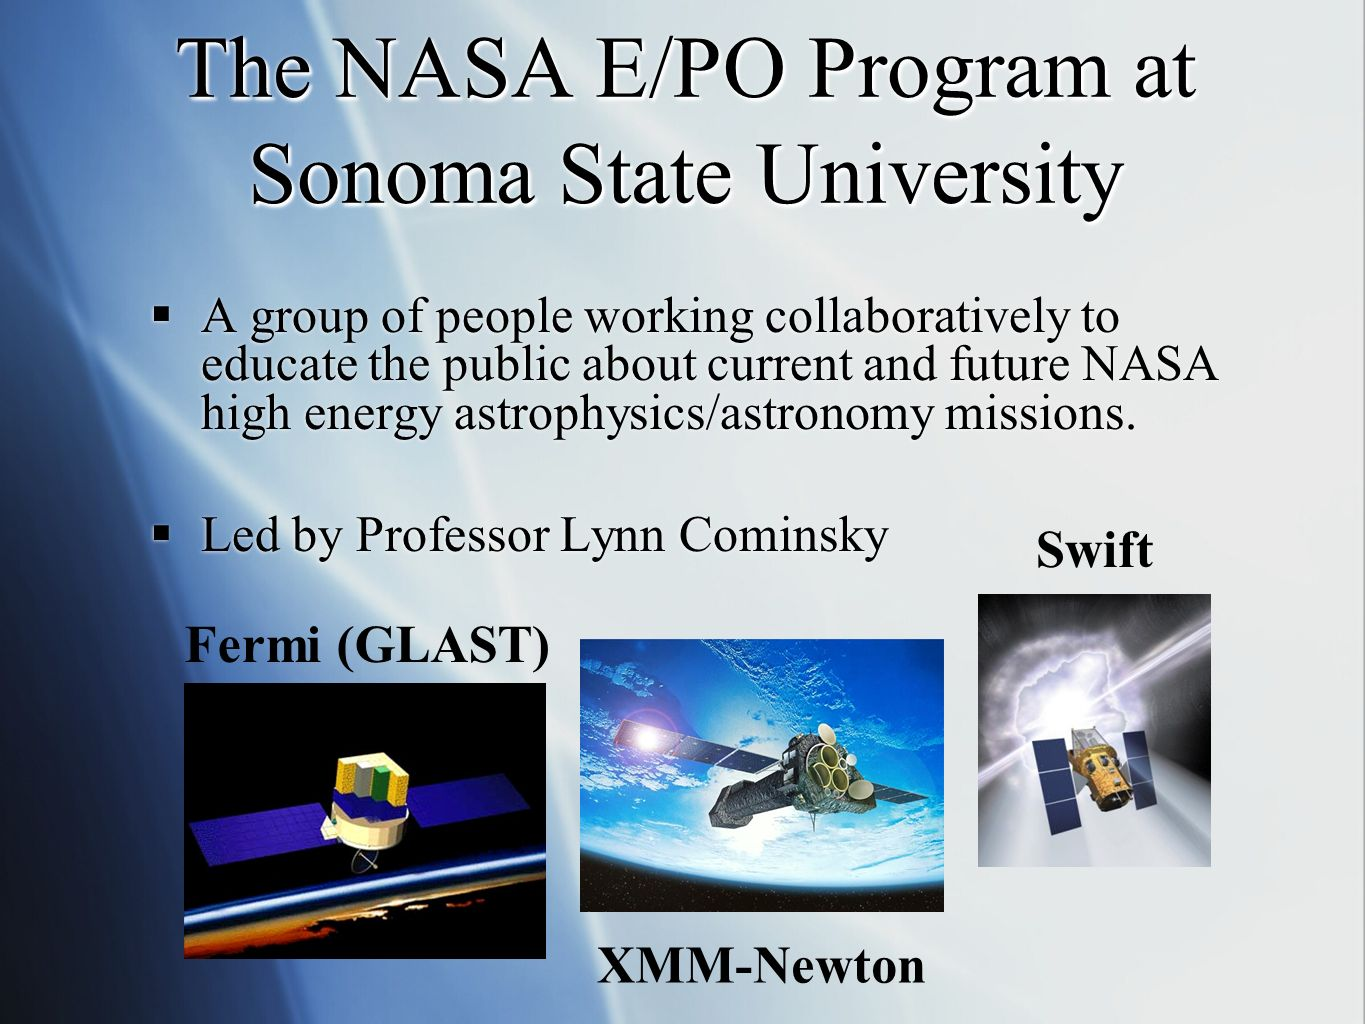 The NASA E/PO Program at Sonoma State University A group of people working collaboratively to educate the public about current and future NASA high energy astrophysics/astronomy missions.